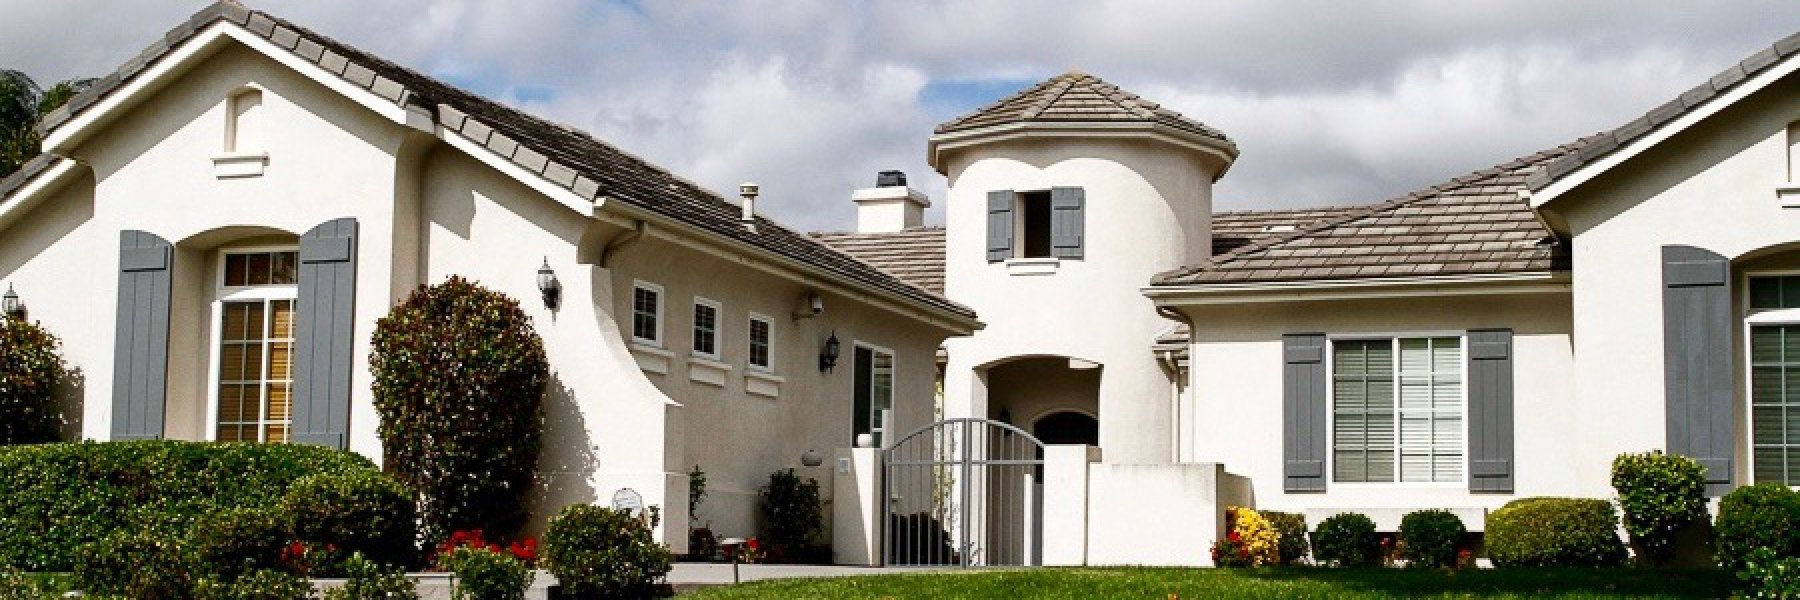 Santa Fe Valley is a community of homes in Rancho Bernardo California